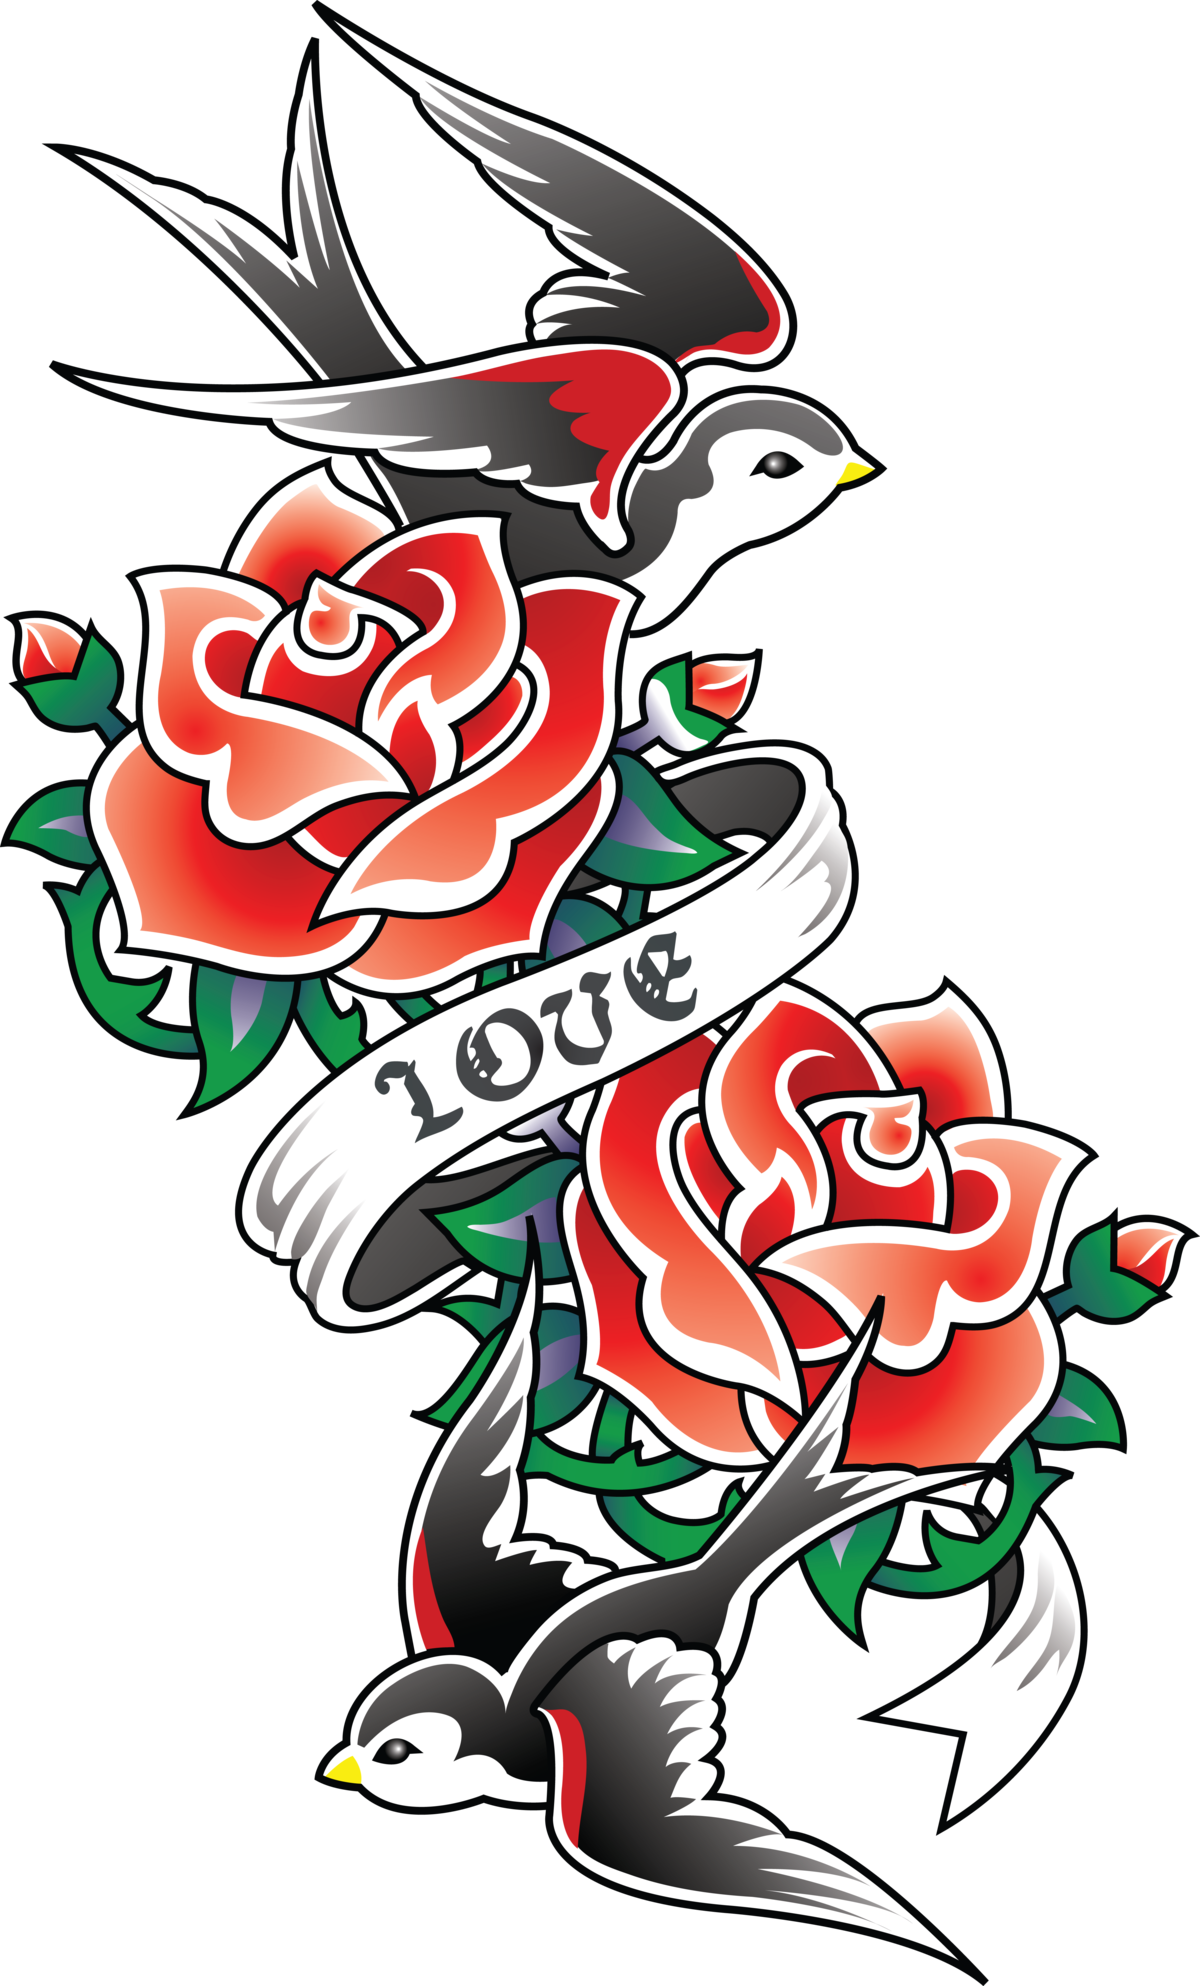 Tattoo School Old Sleeve Rose (Tattoo) Swallow PNG Image